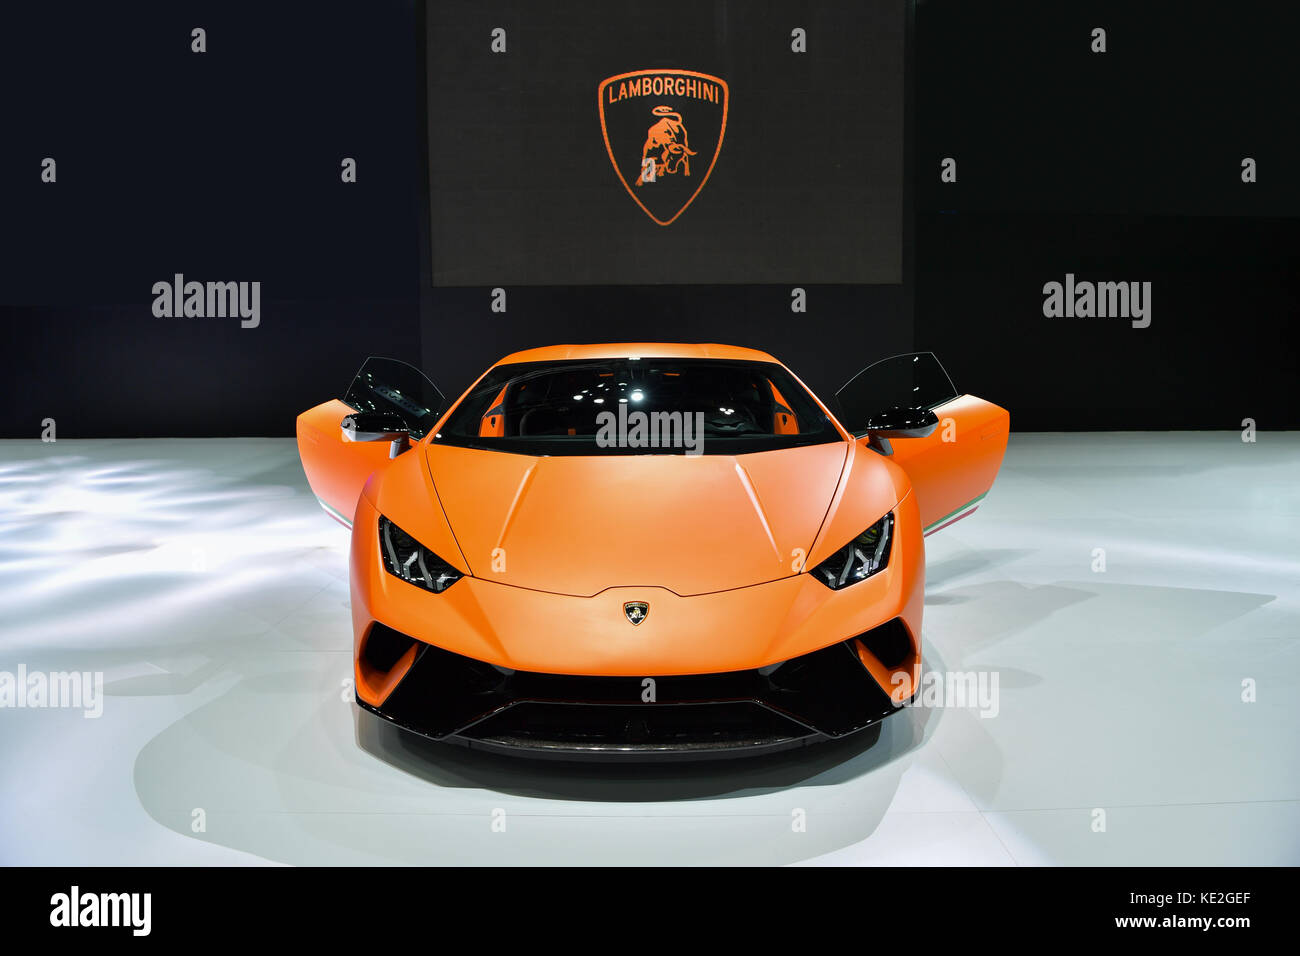 huracan performante stock photos huracan performante stock images alamy. Black Bedroom Furniture Sets. Home Design Ideas